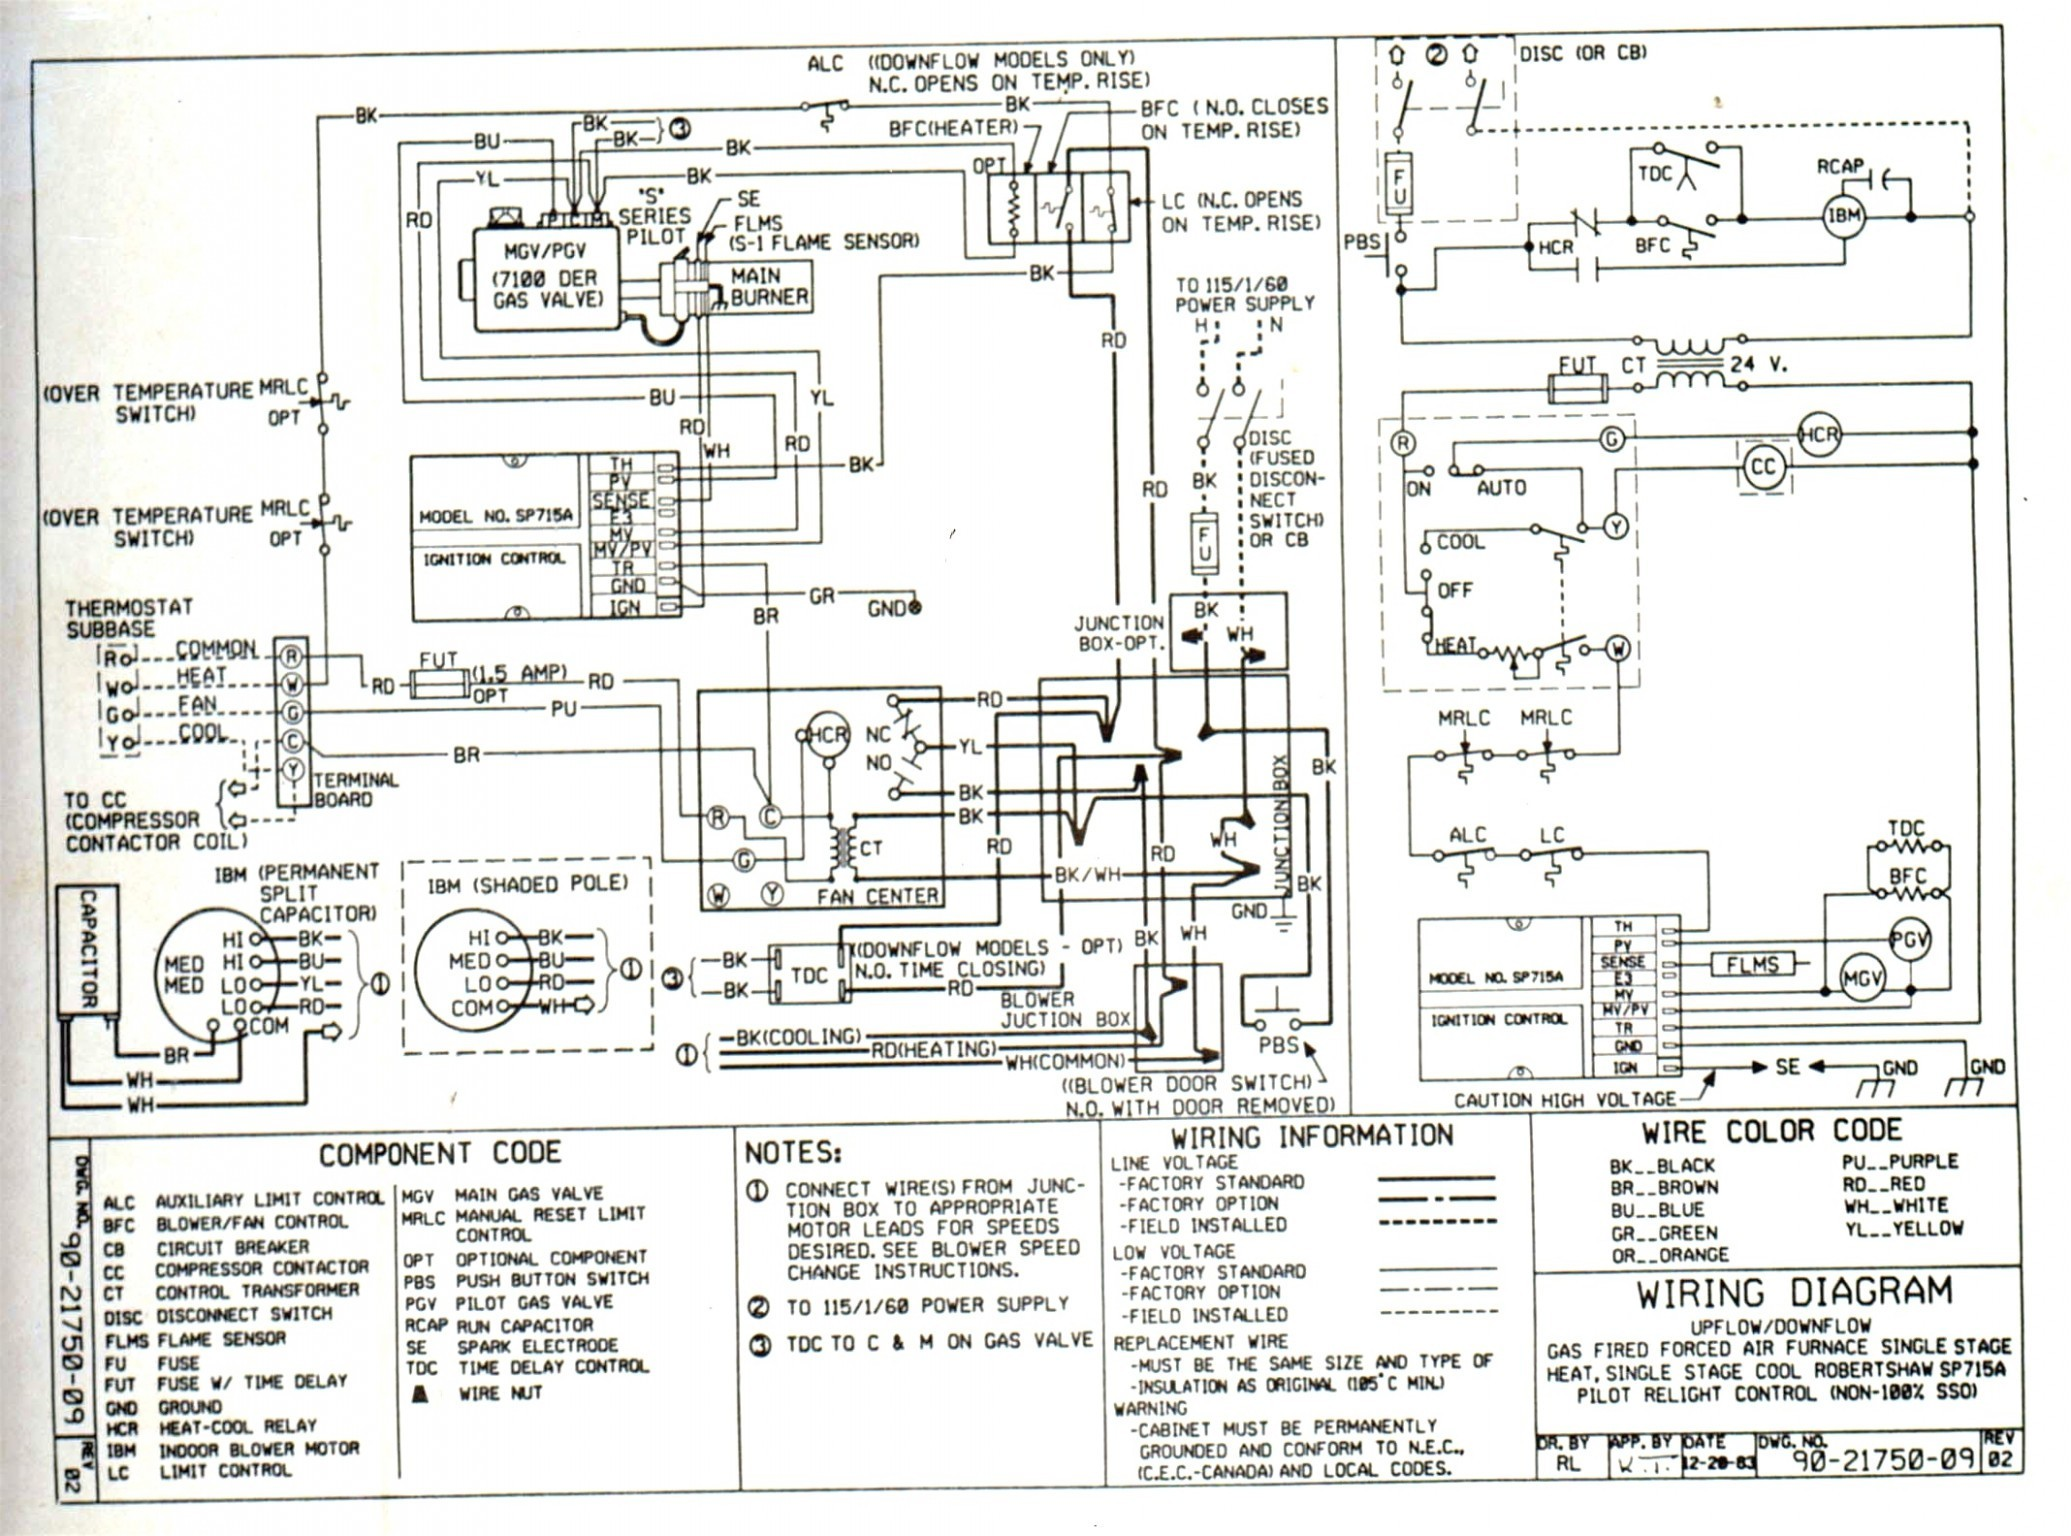 Coleman Stove Parts Diagram Wiring Diagram for Central Electric Furnace Refrence Goodman Gas Of Coleman Stove Parts Diagram